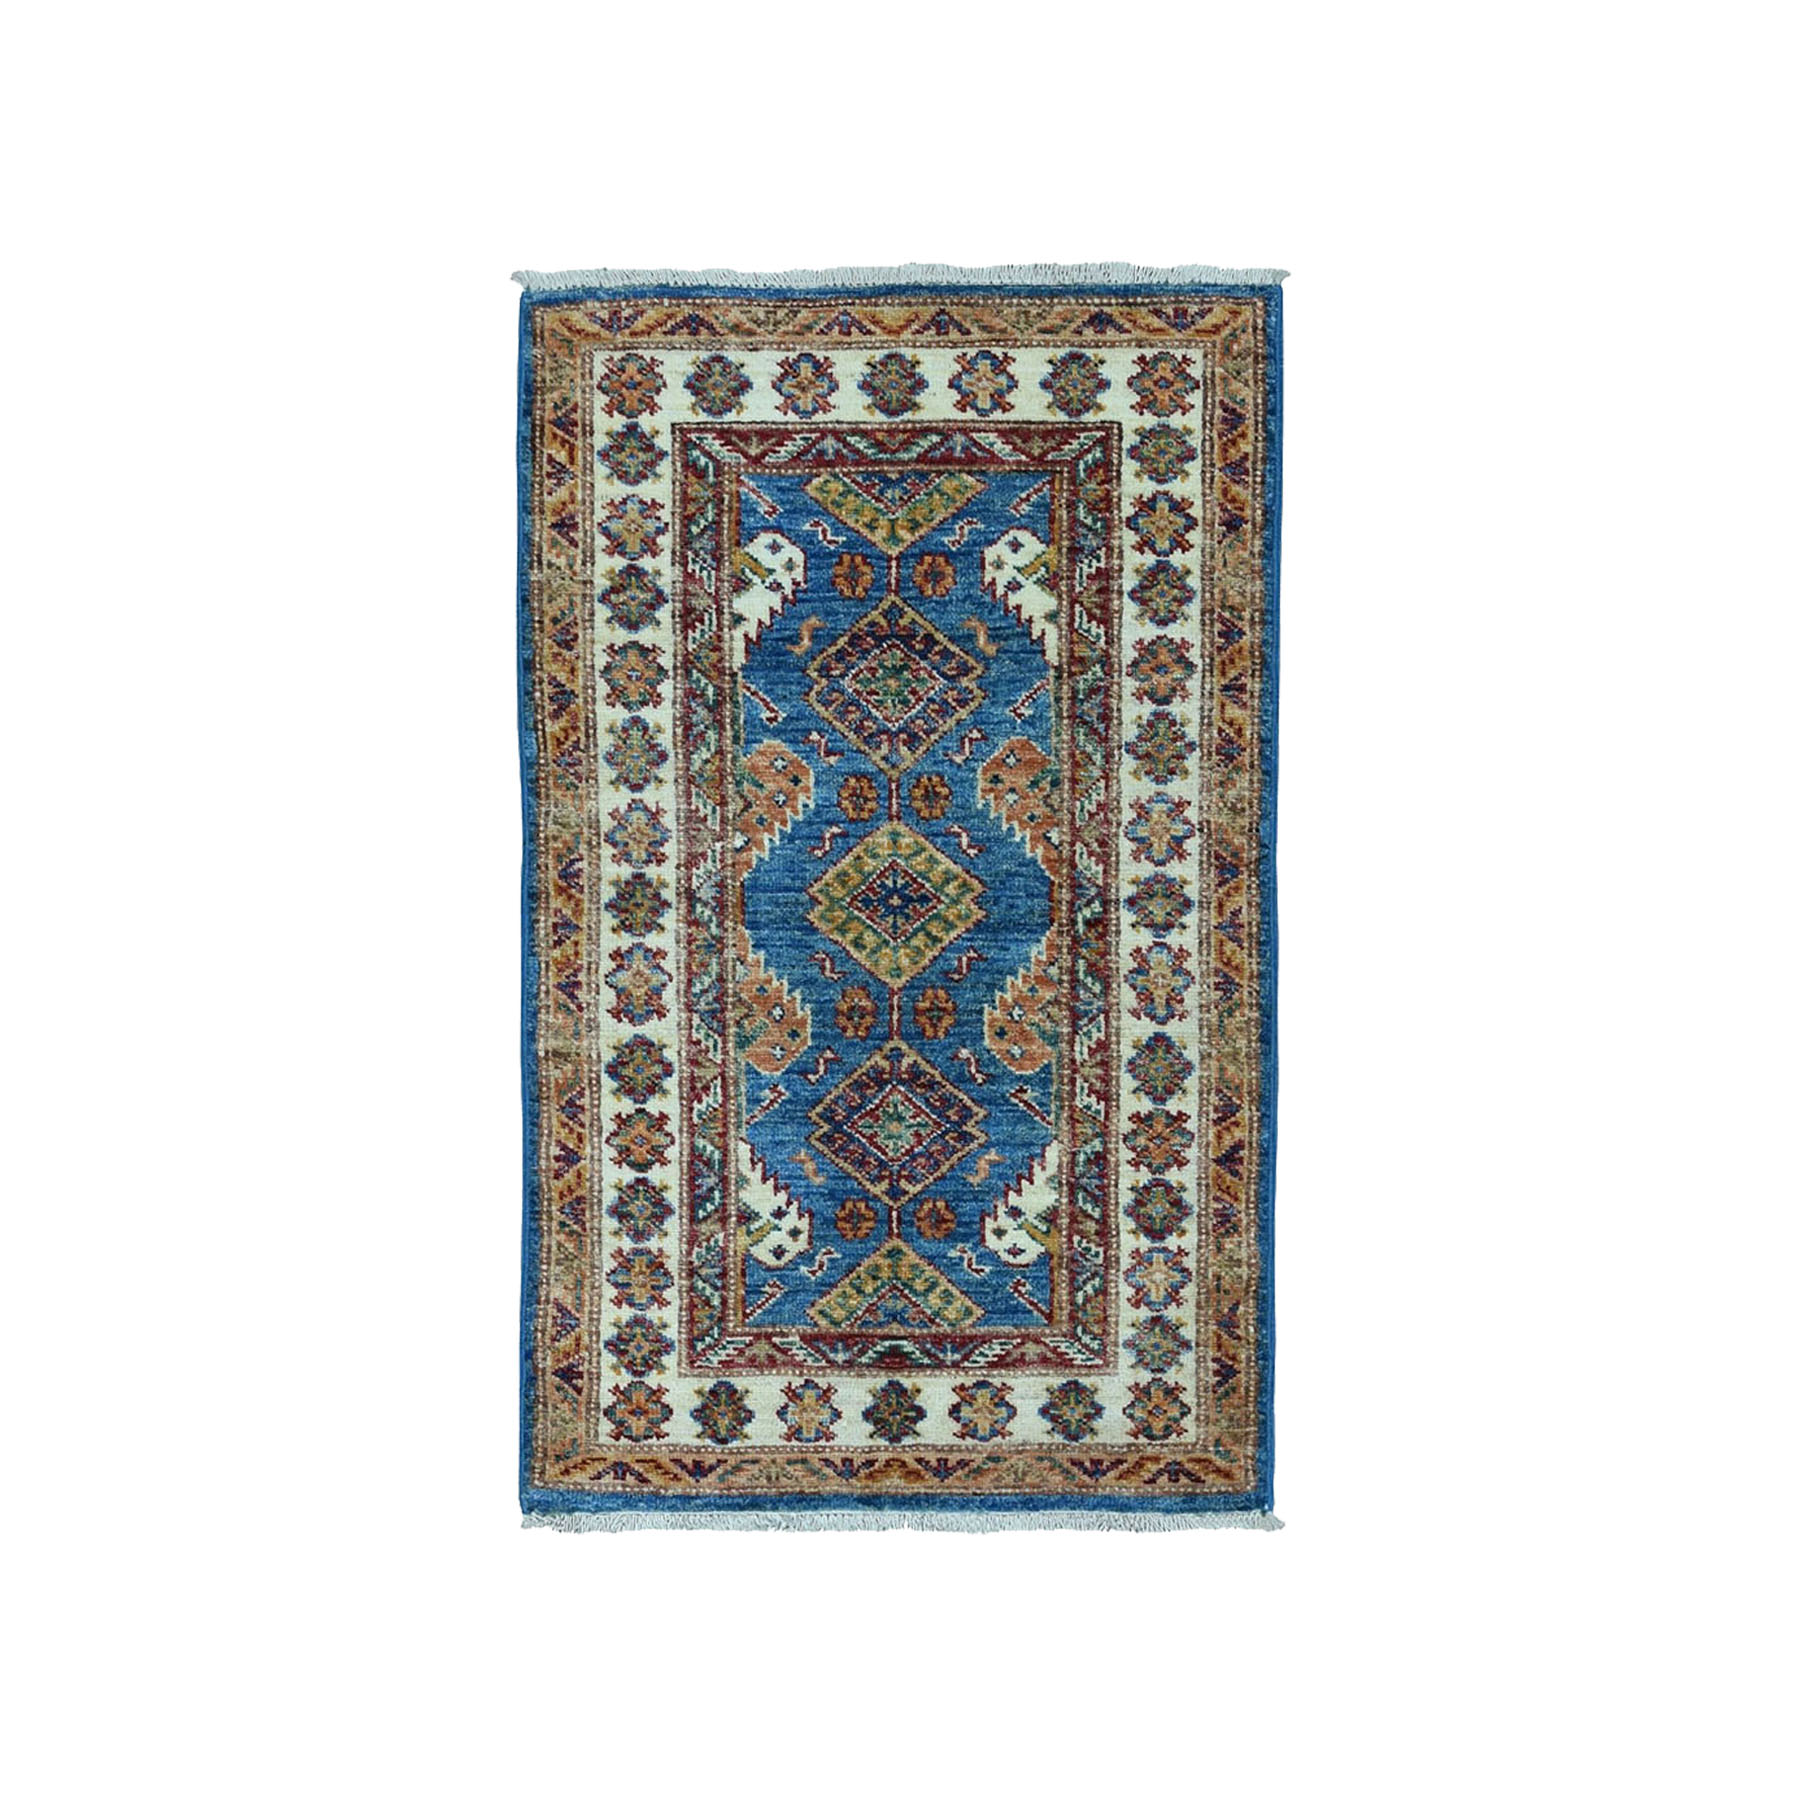 "2'x3'1"" Blue Super Kazak Pure Wool Geometric Design Hand Woven Oriental Rug"